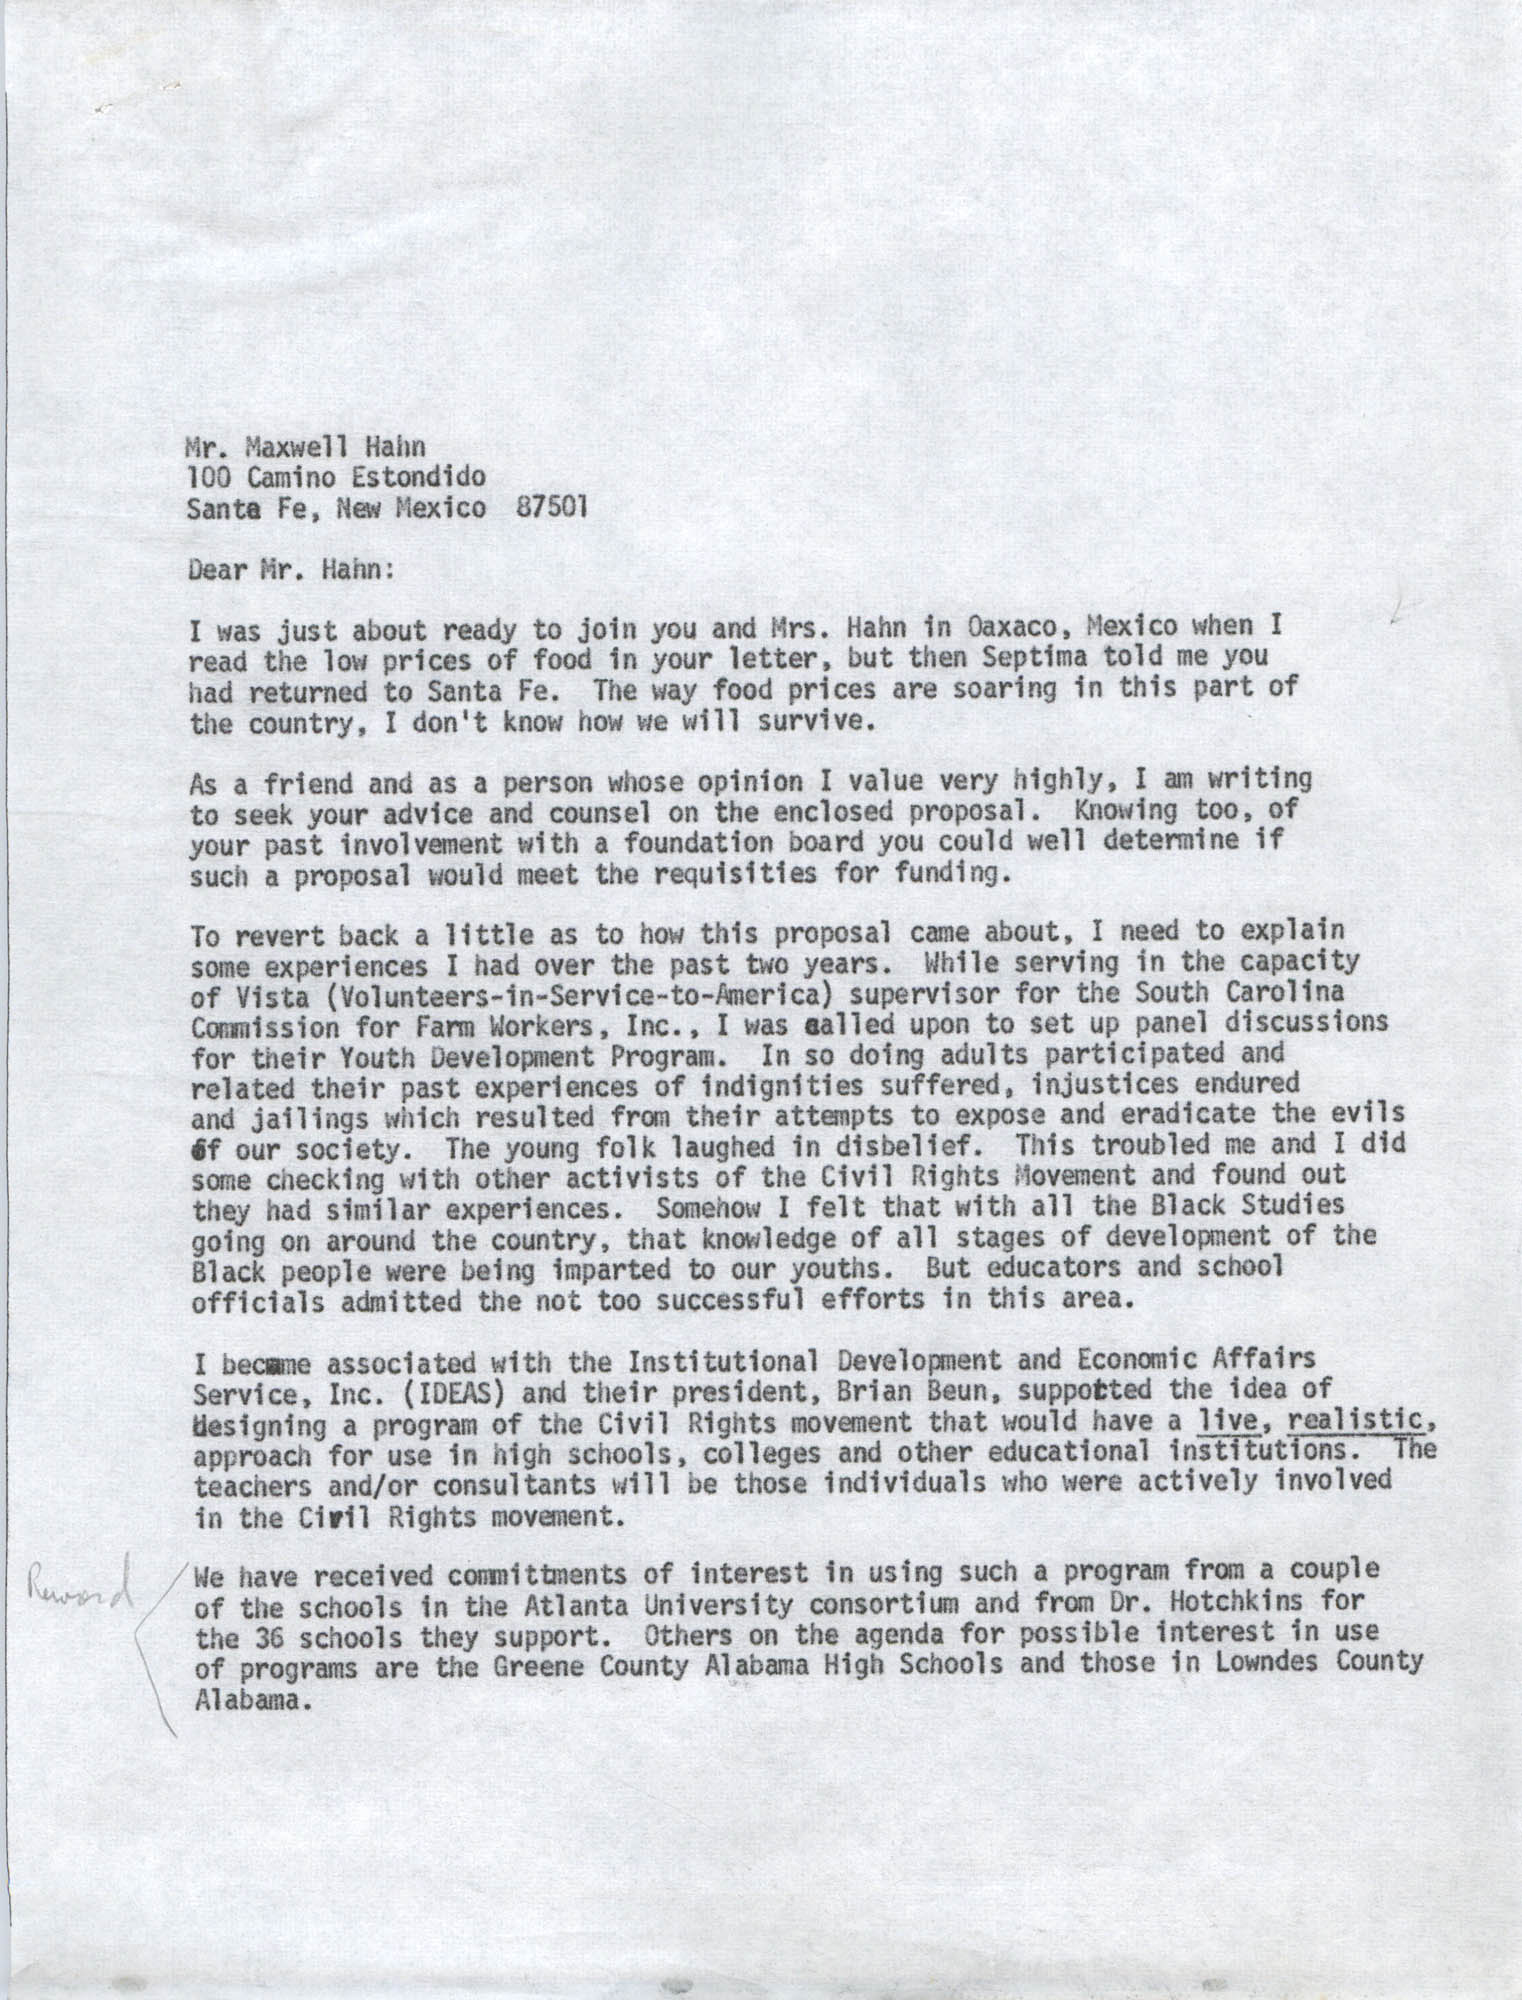 Letter from Bernice Robinson to Maxwell Hahn, May 4, 1973, Draft Page 1